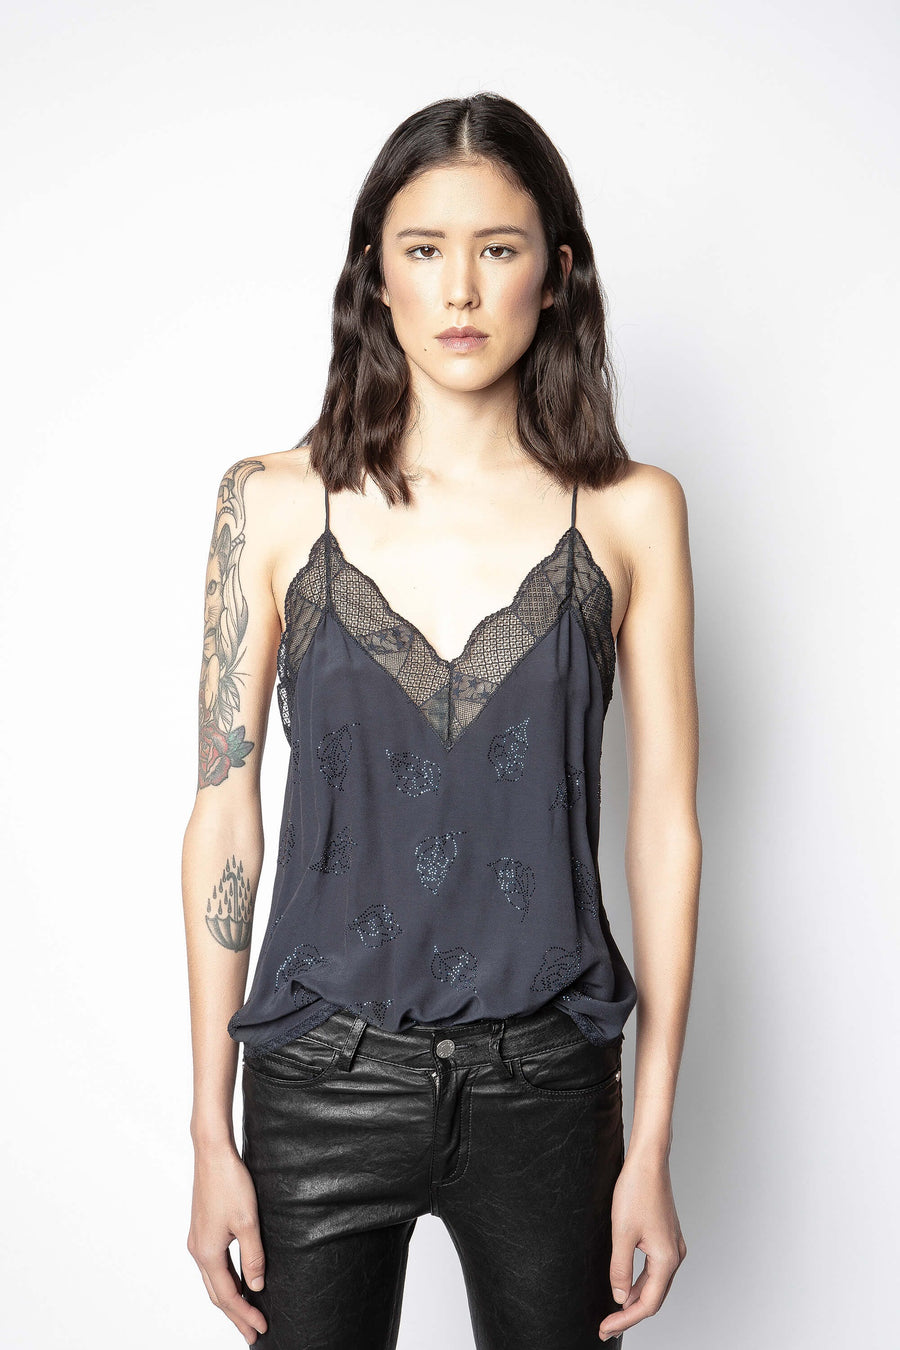 Zadig & Voltaire Christy Strass Camisole